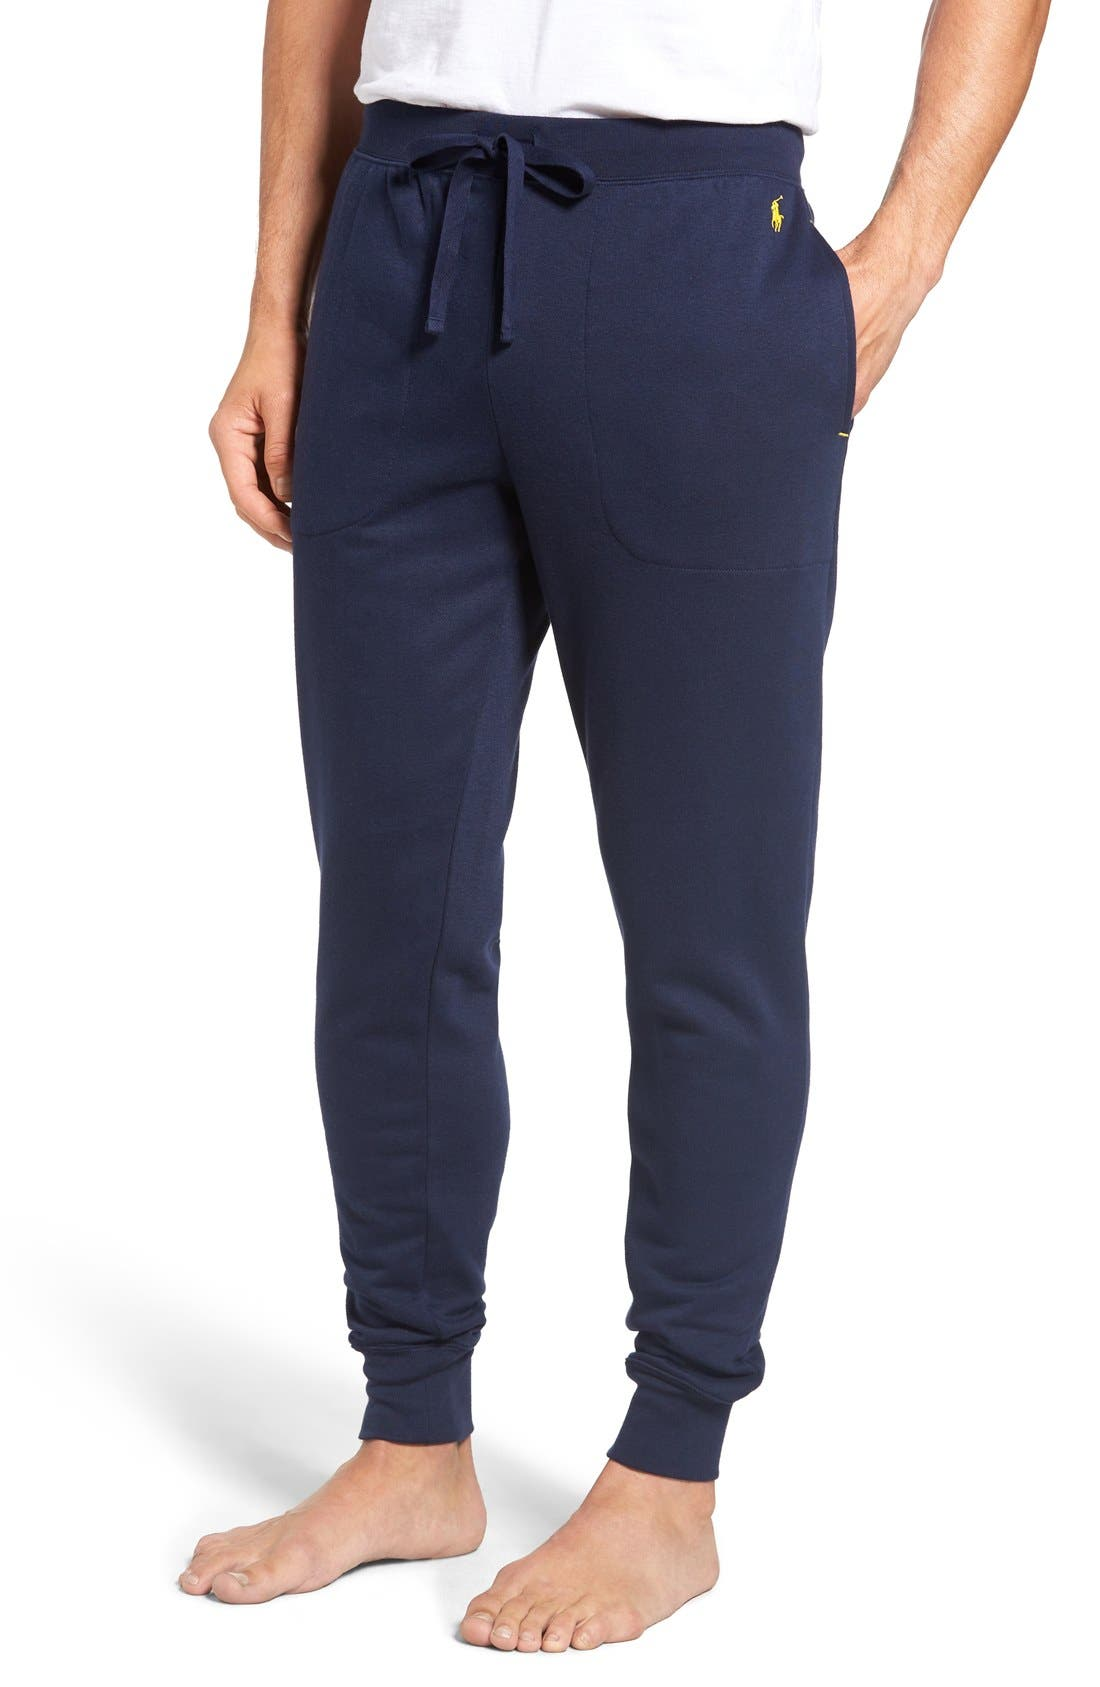 Alternate Image 1 Selected - Polo Ralph Lauren Brushed Jersey Cotton Blend Jogger Pants